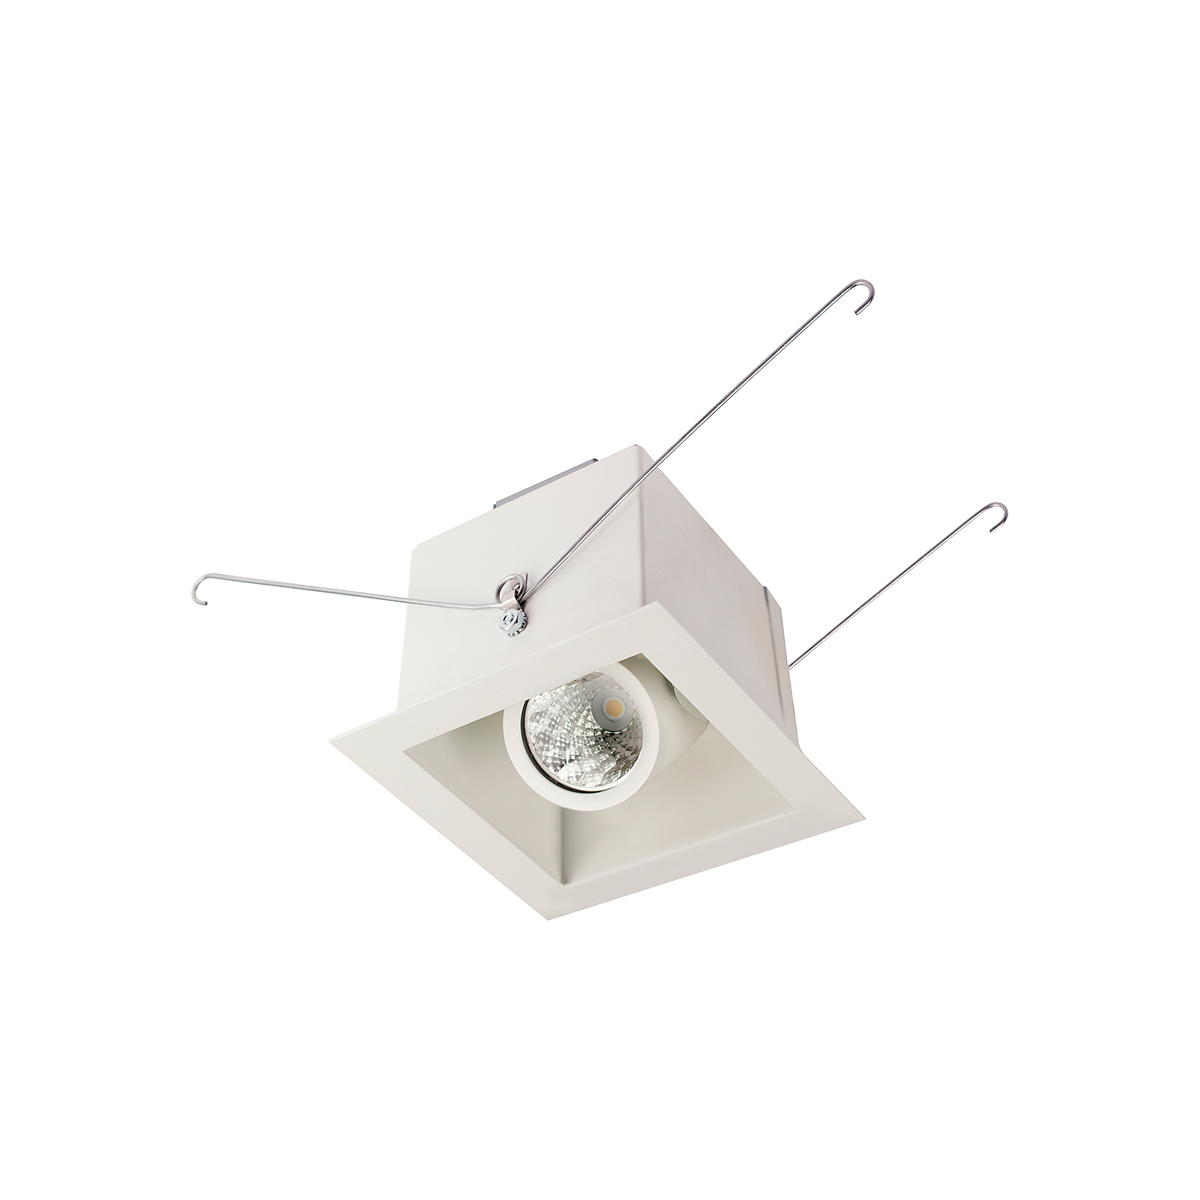 OmniSpot LED Recessed Multiple